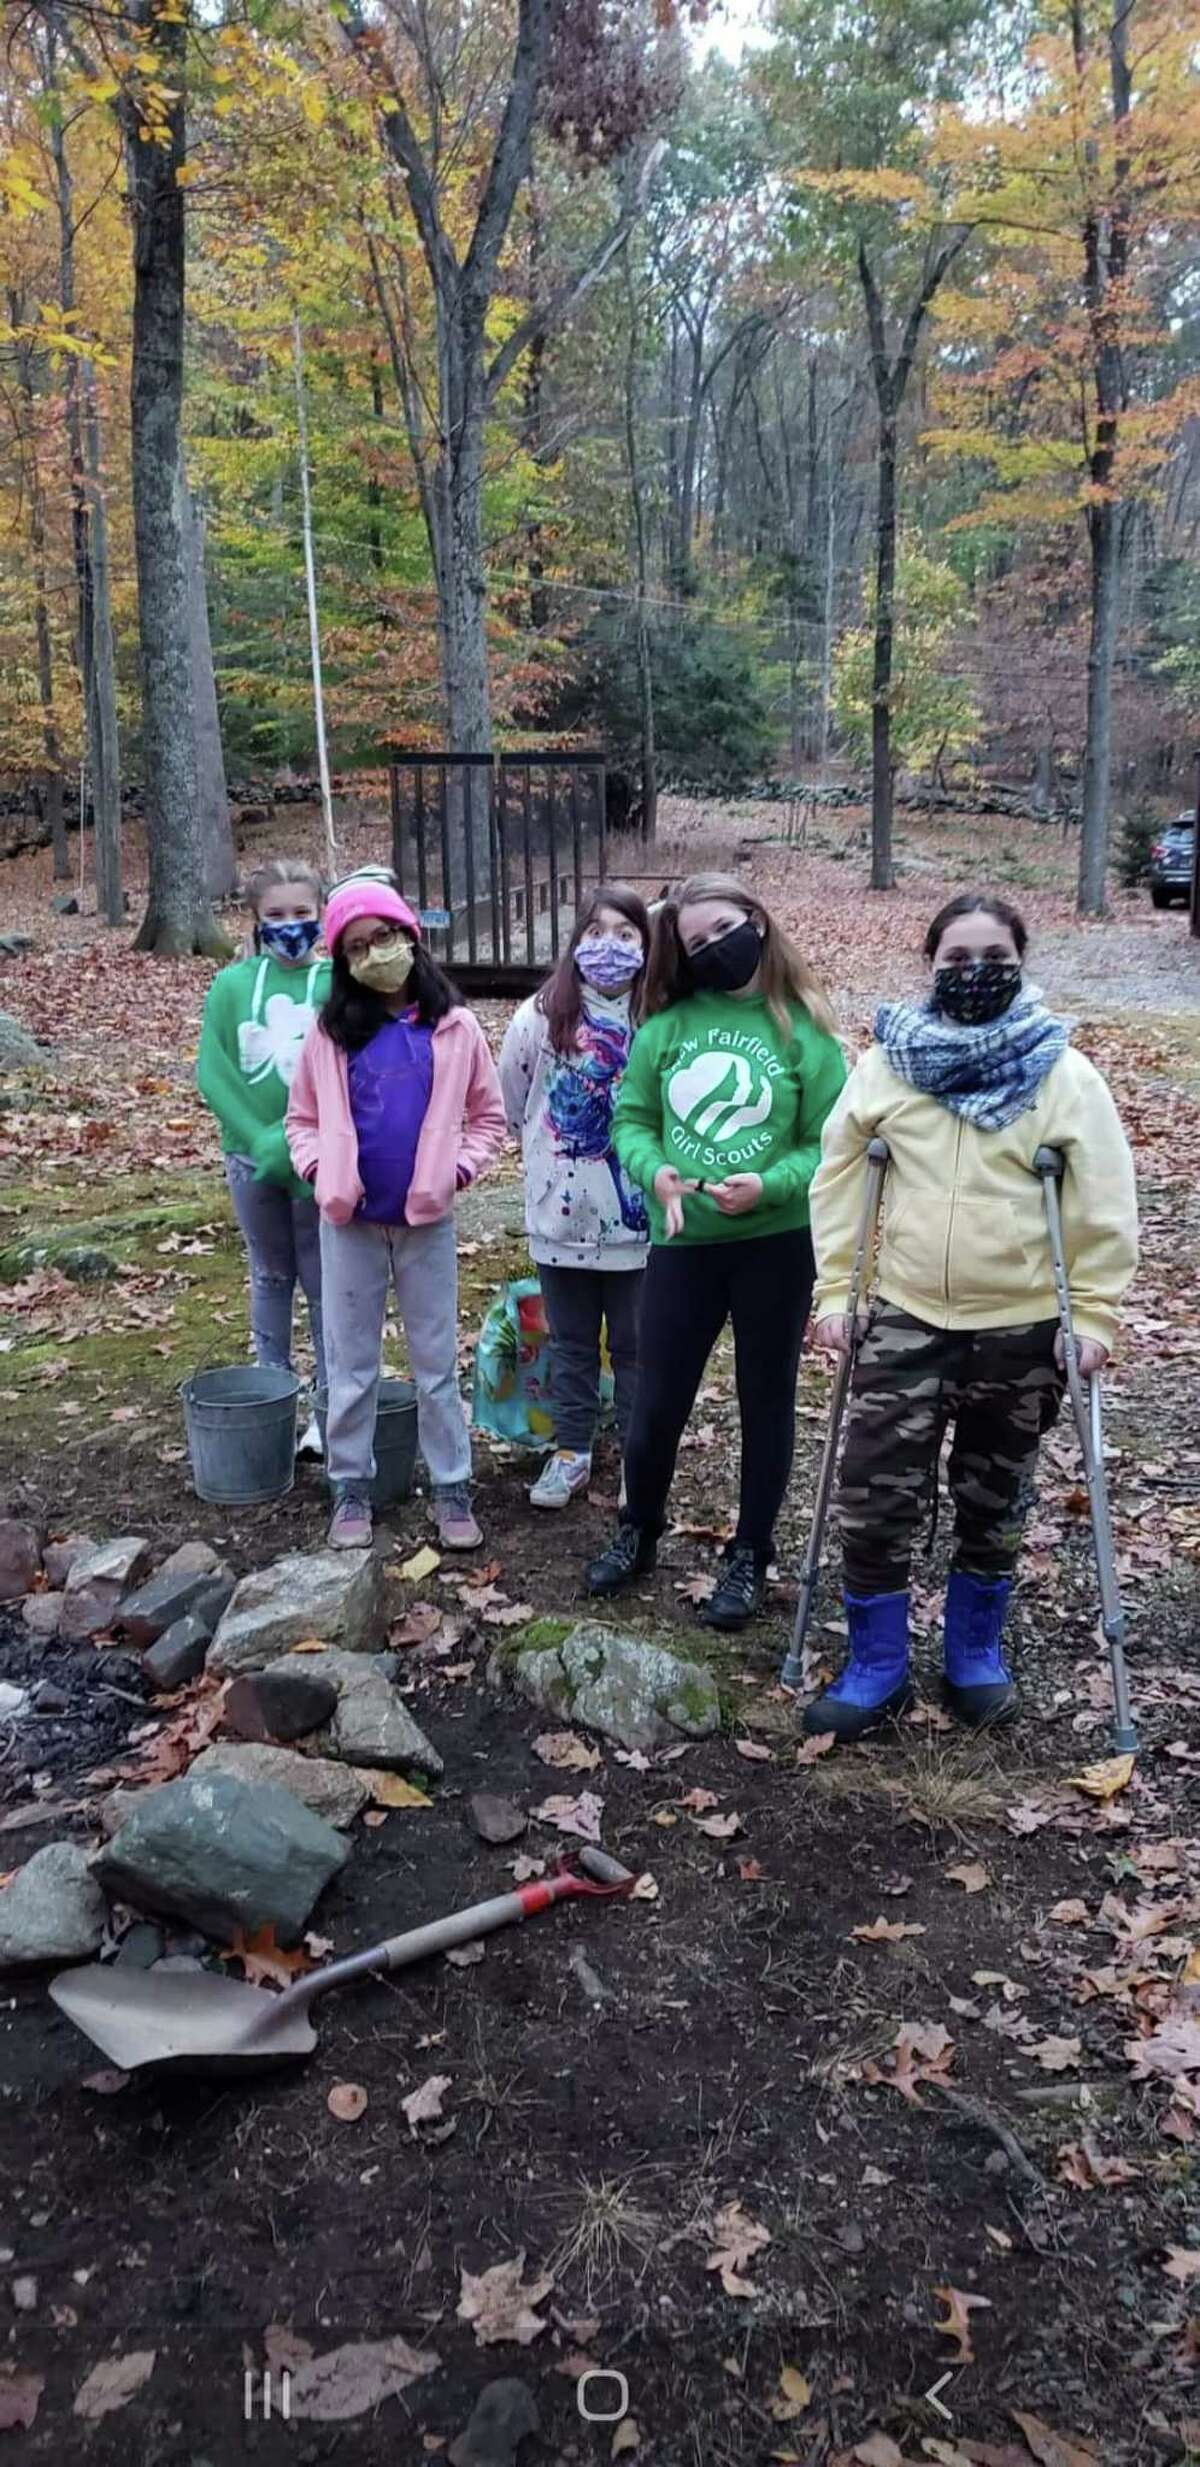 Troop leader Lori Pires Magnante said she's heartbroken that the Girl Scouts of Connecticut are selling Camp Candlewood as her scouts enjoy attending Camporee there.